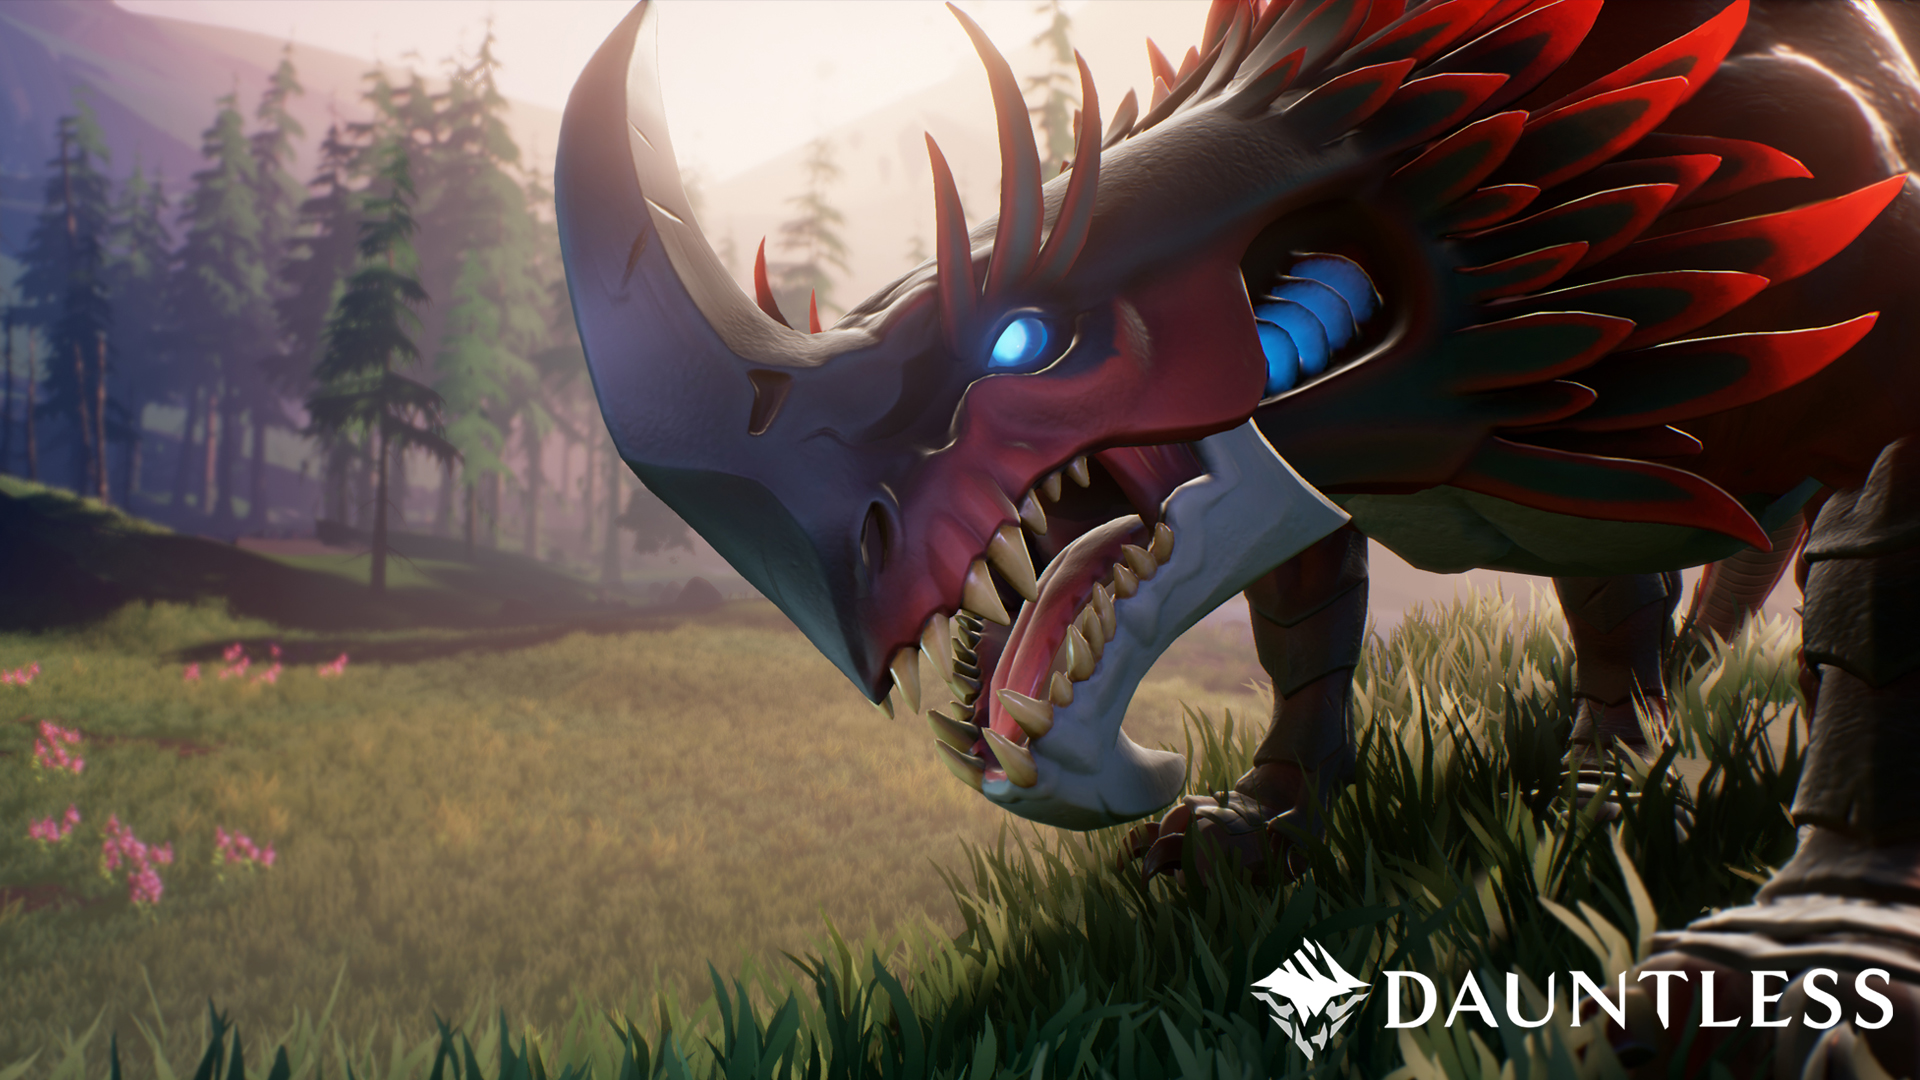 Dauntless Announced at the 2016 Game Awards